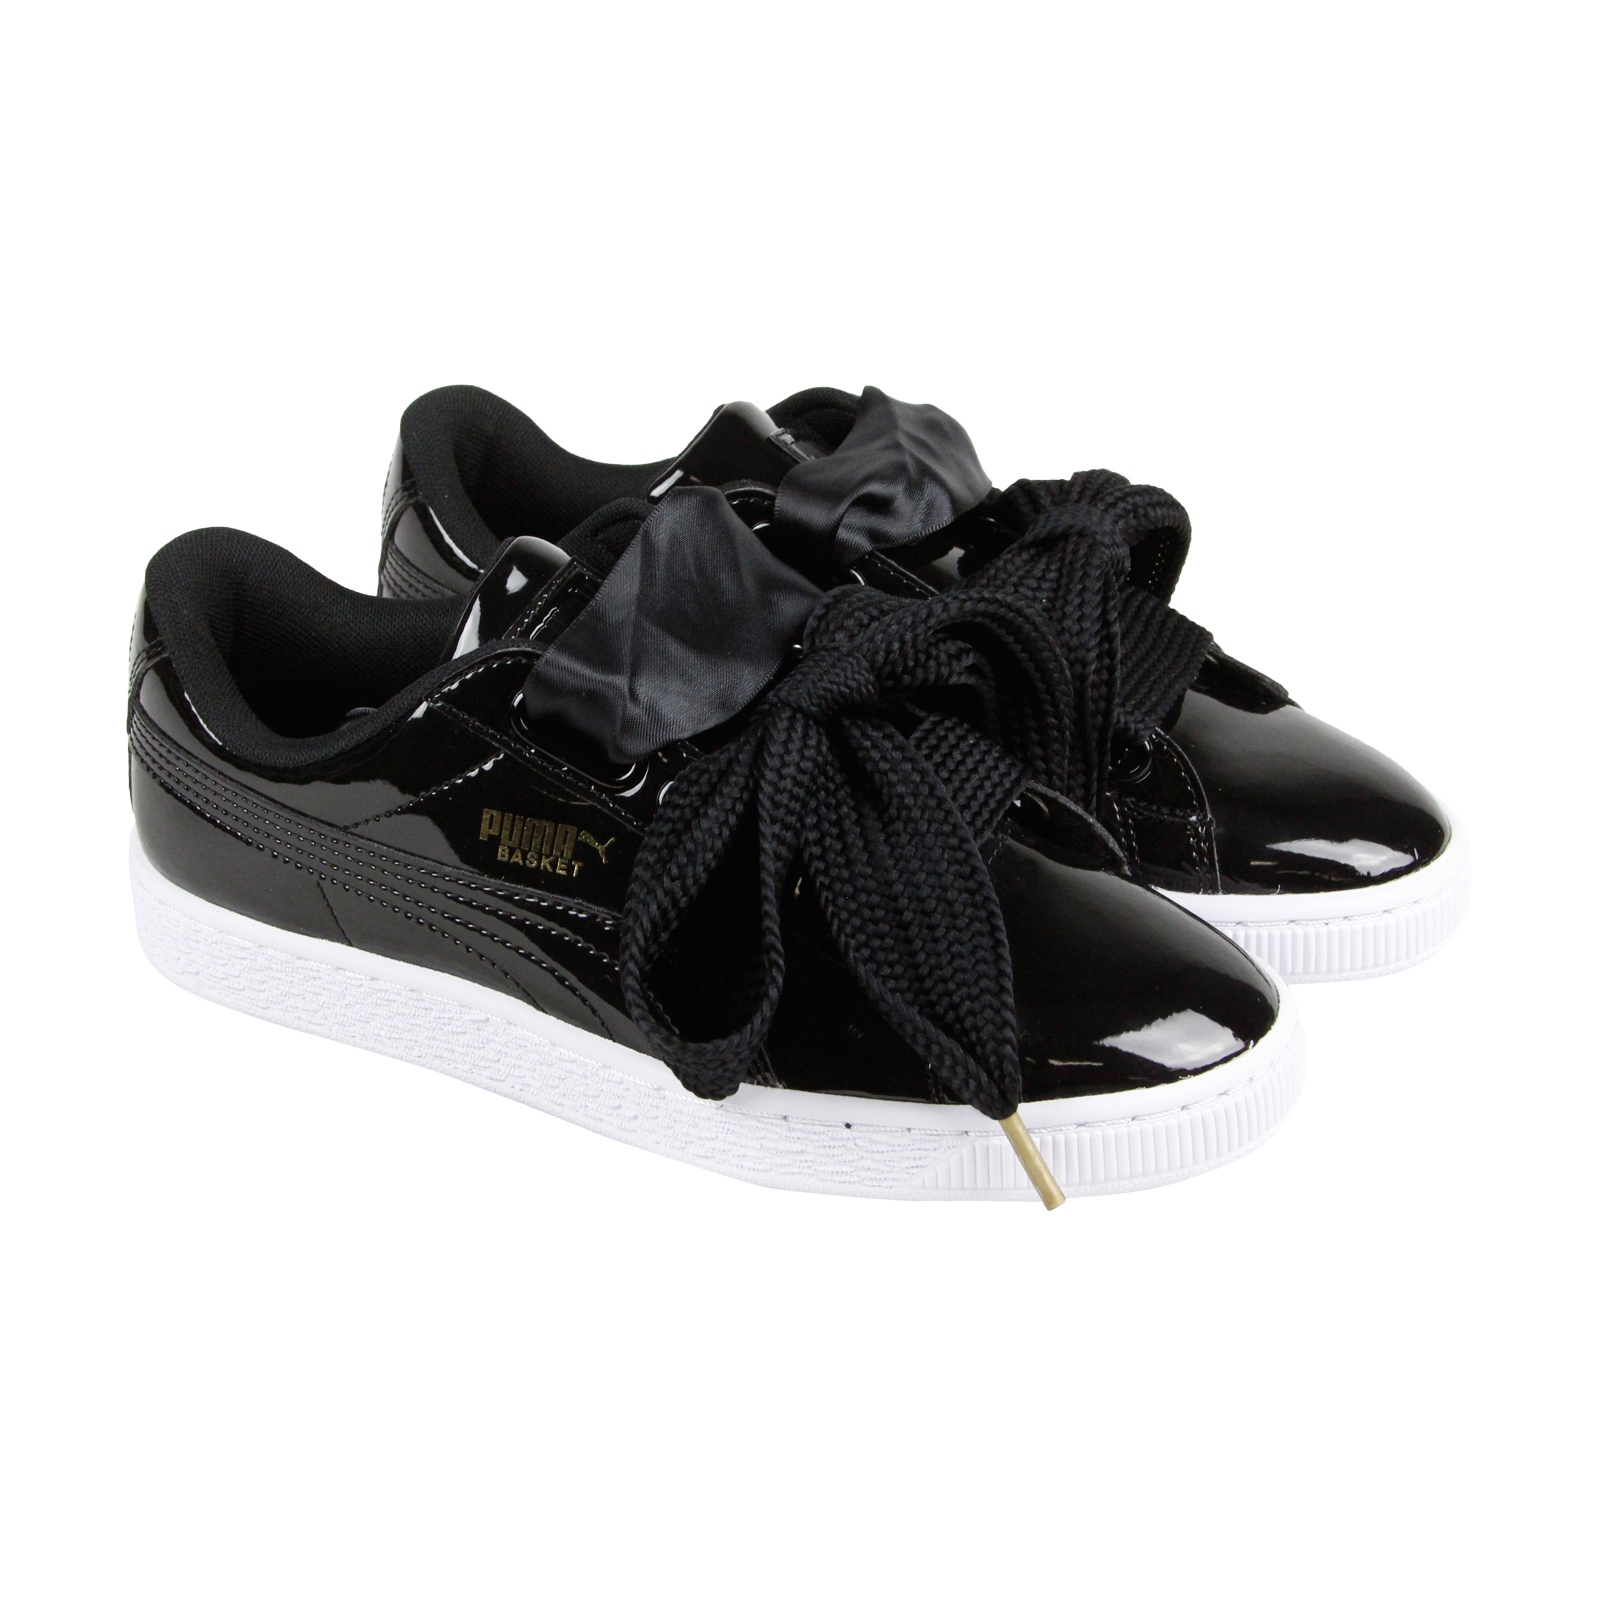 size 40 3003e 380e5 PUMA BASKET HEART Patent Womens Black Patent Leather Lace Up Sneakers Shoes